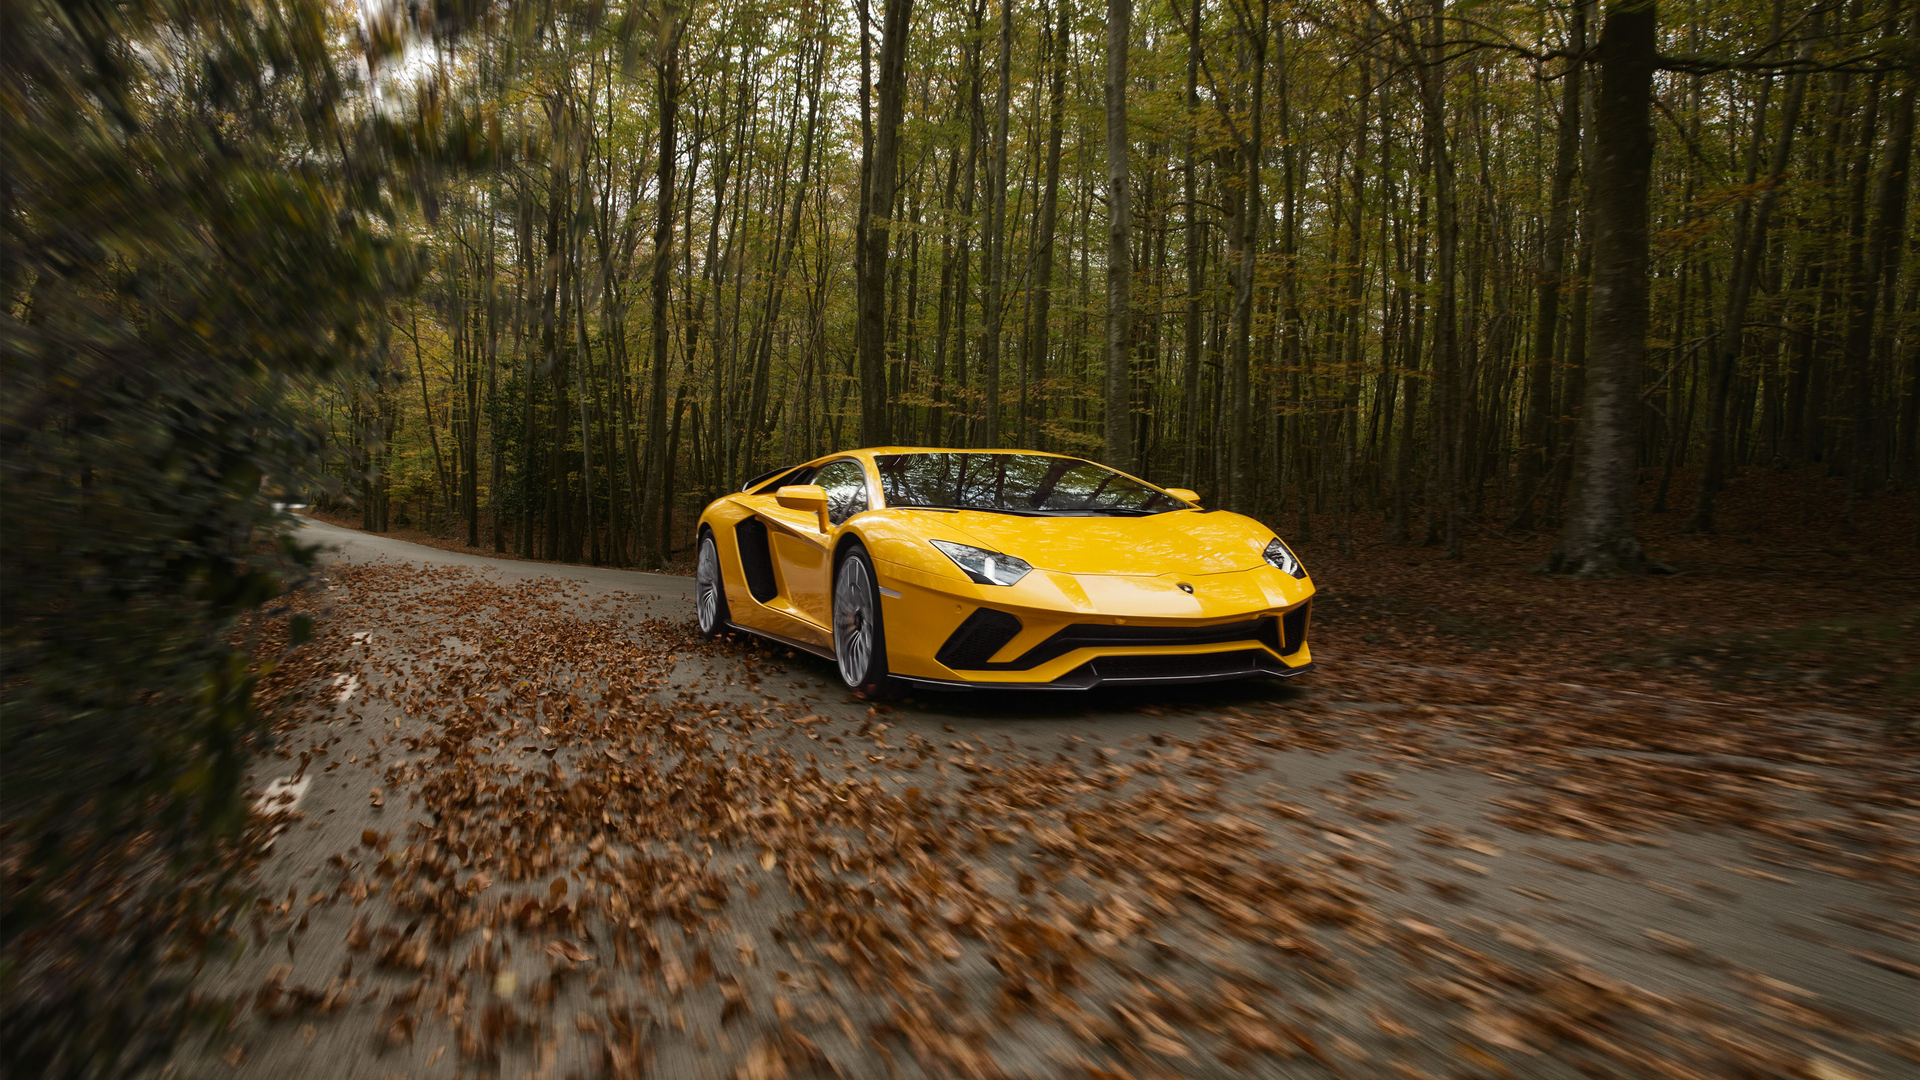 1920x1080 Lamborghini Aventador S 4k Car Laptop Full Hd 1080p Hd 4k